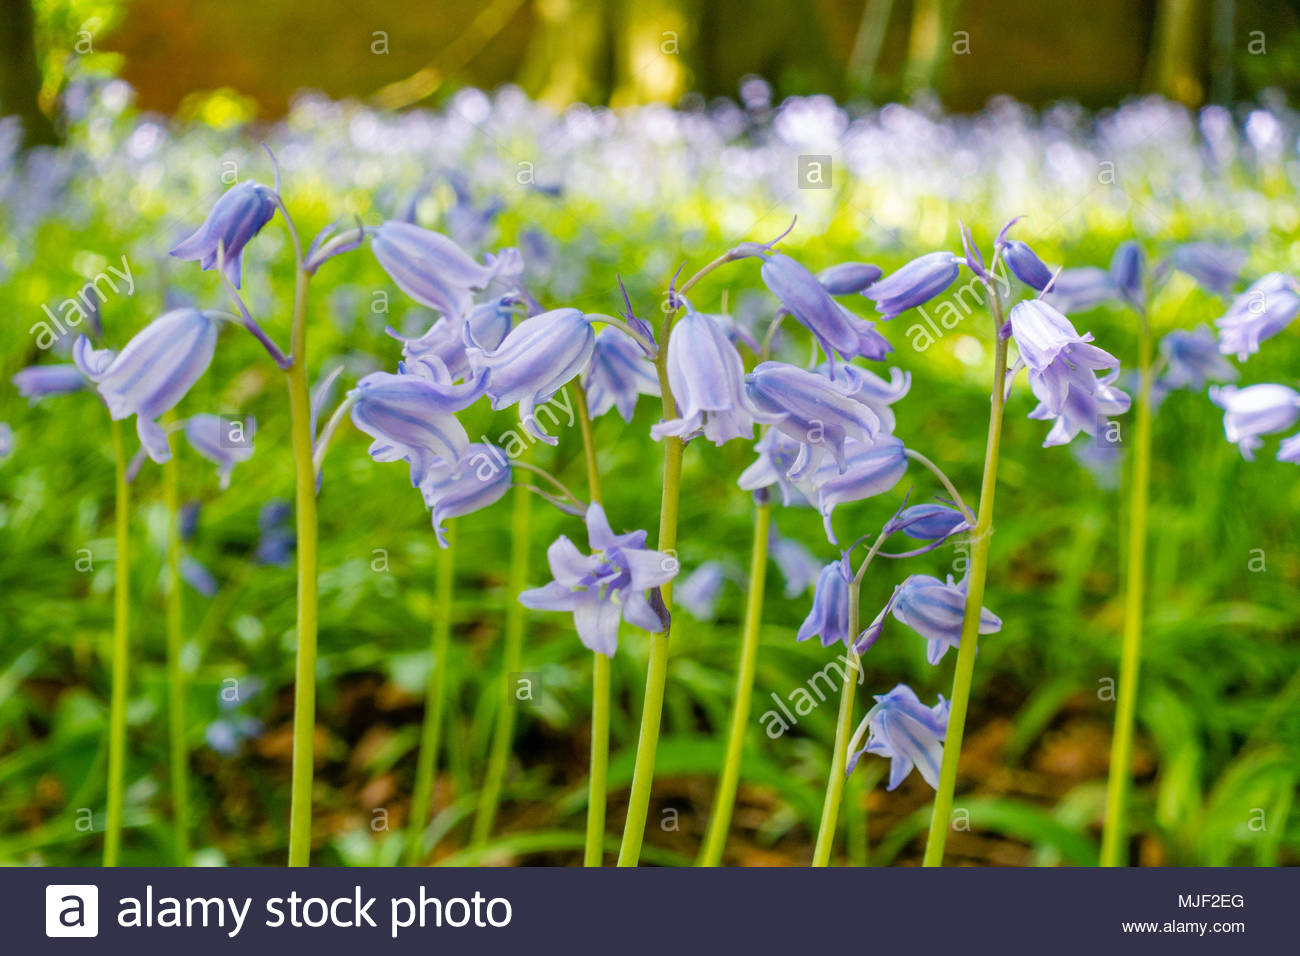 English Spring Bluebells (Hyacinthoides non-scripta) in the sunshine on the Bank Holiday Mayday Weekend at Croxteth Hall, Croxteth Country Park, Liverpool England UK Credit: Christopher Canty Photography/Alamy Live News - Stock Image